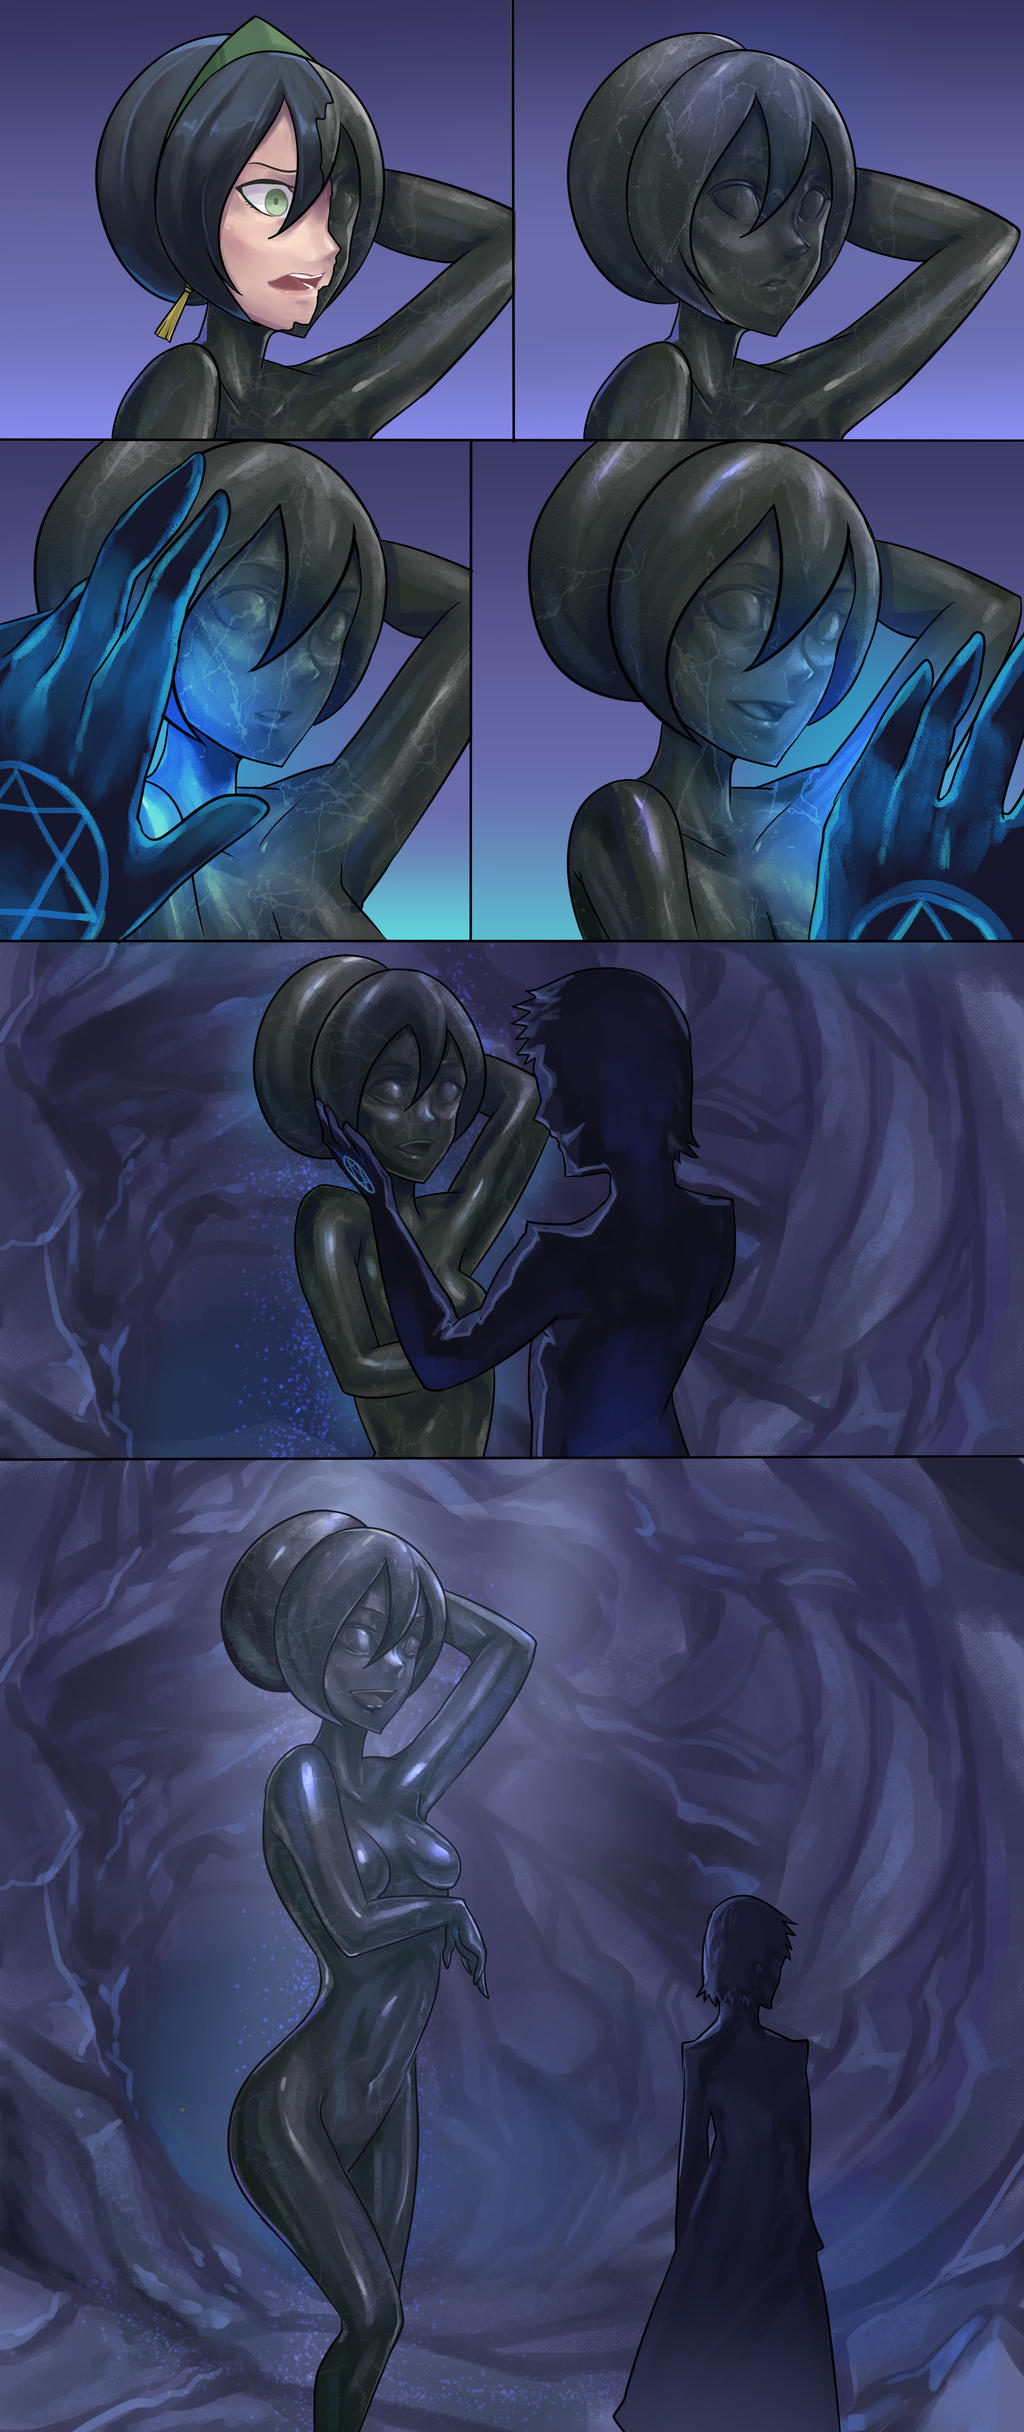 toph bei fong (avatar and 1 more) drawn by ibenz009   Danbooru